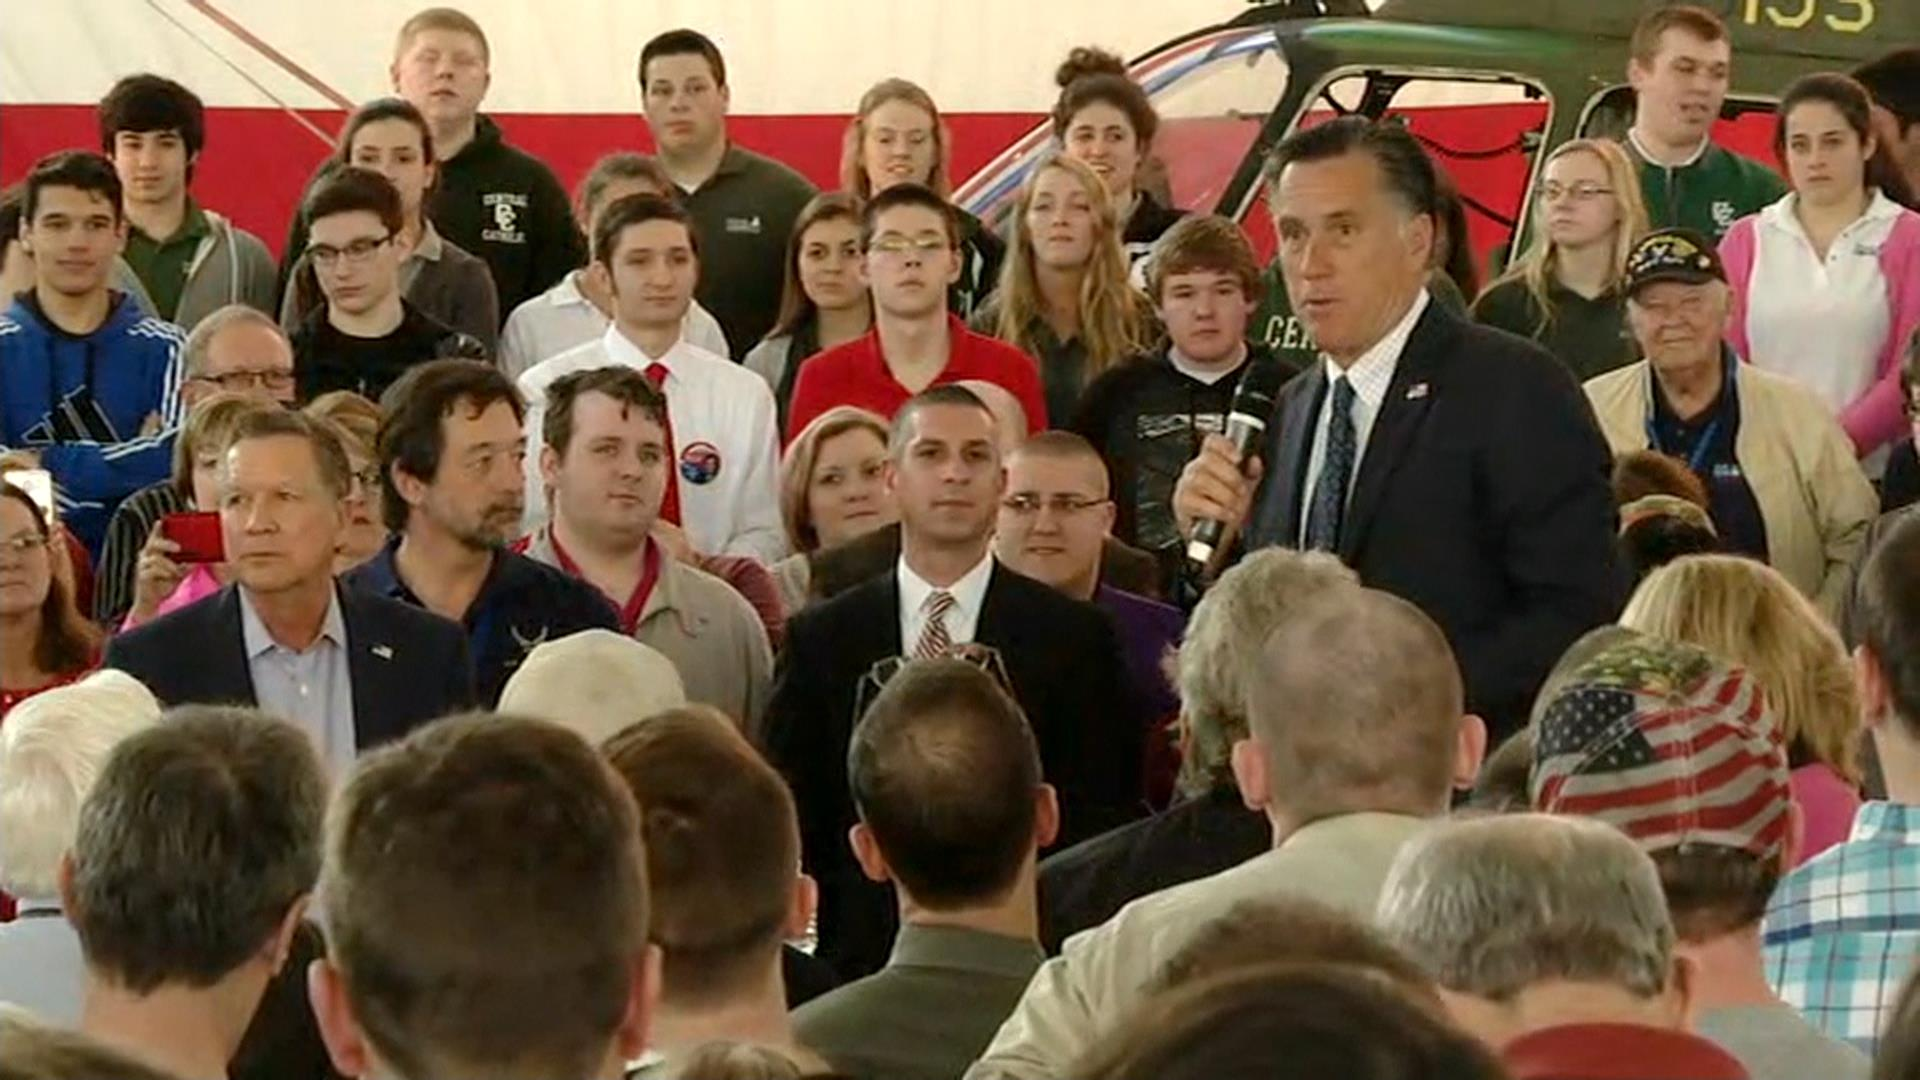 Romney Asks Ohio Voters to Support Kasich